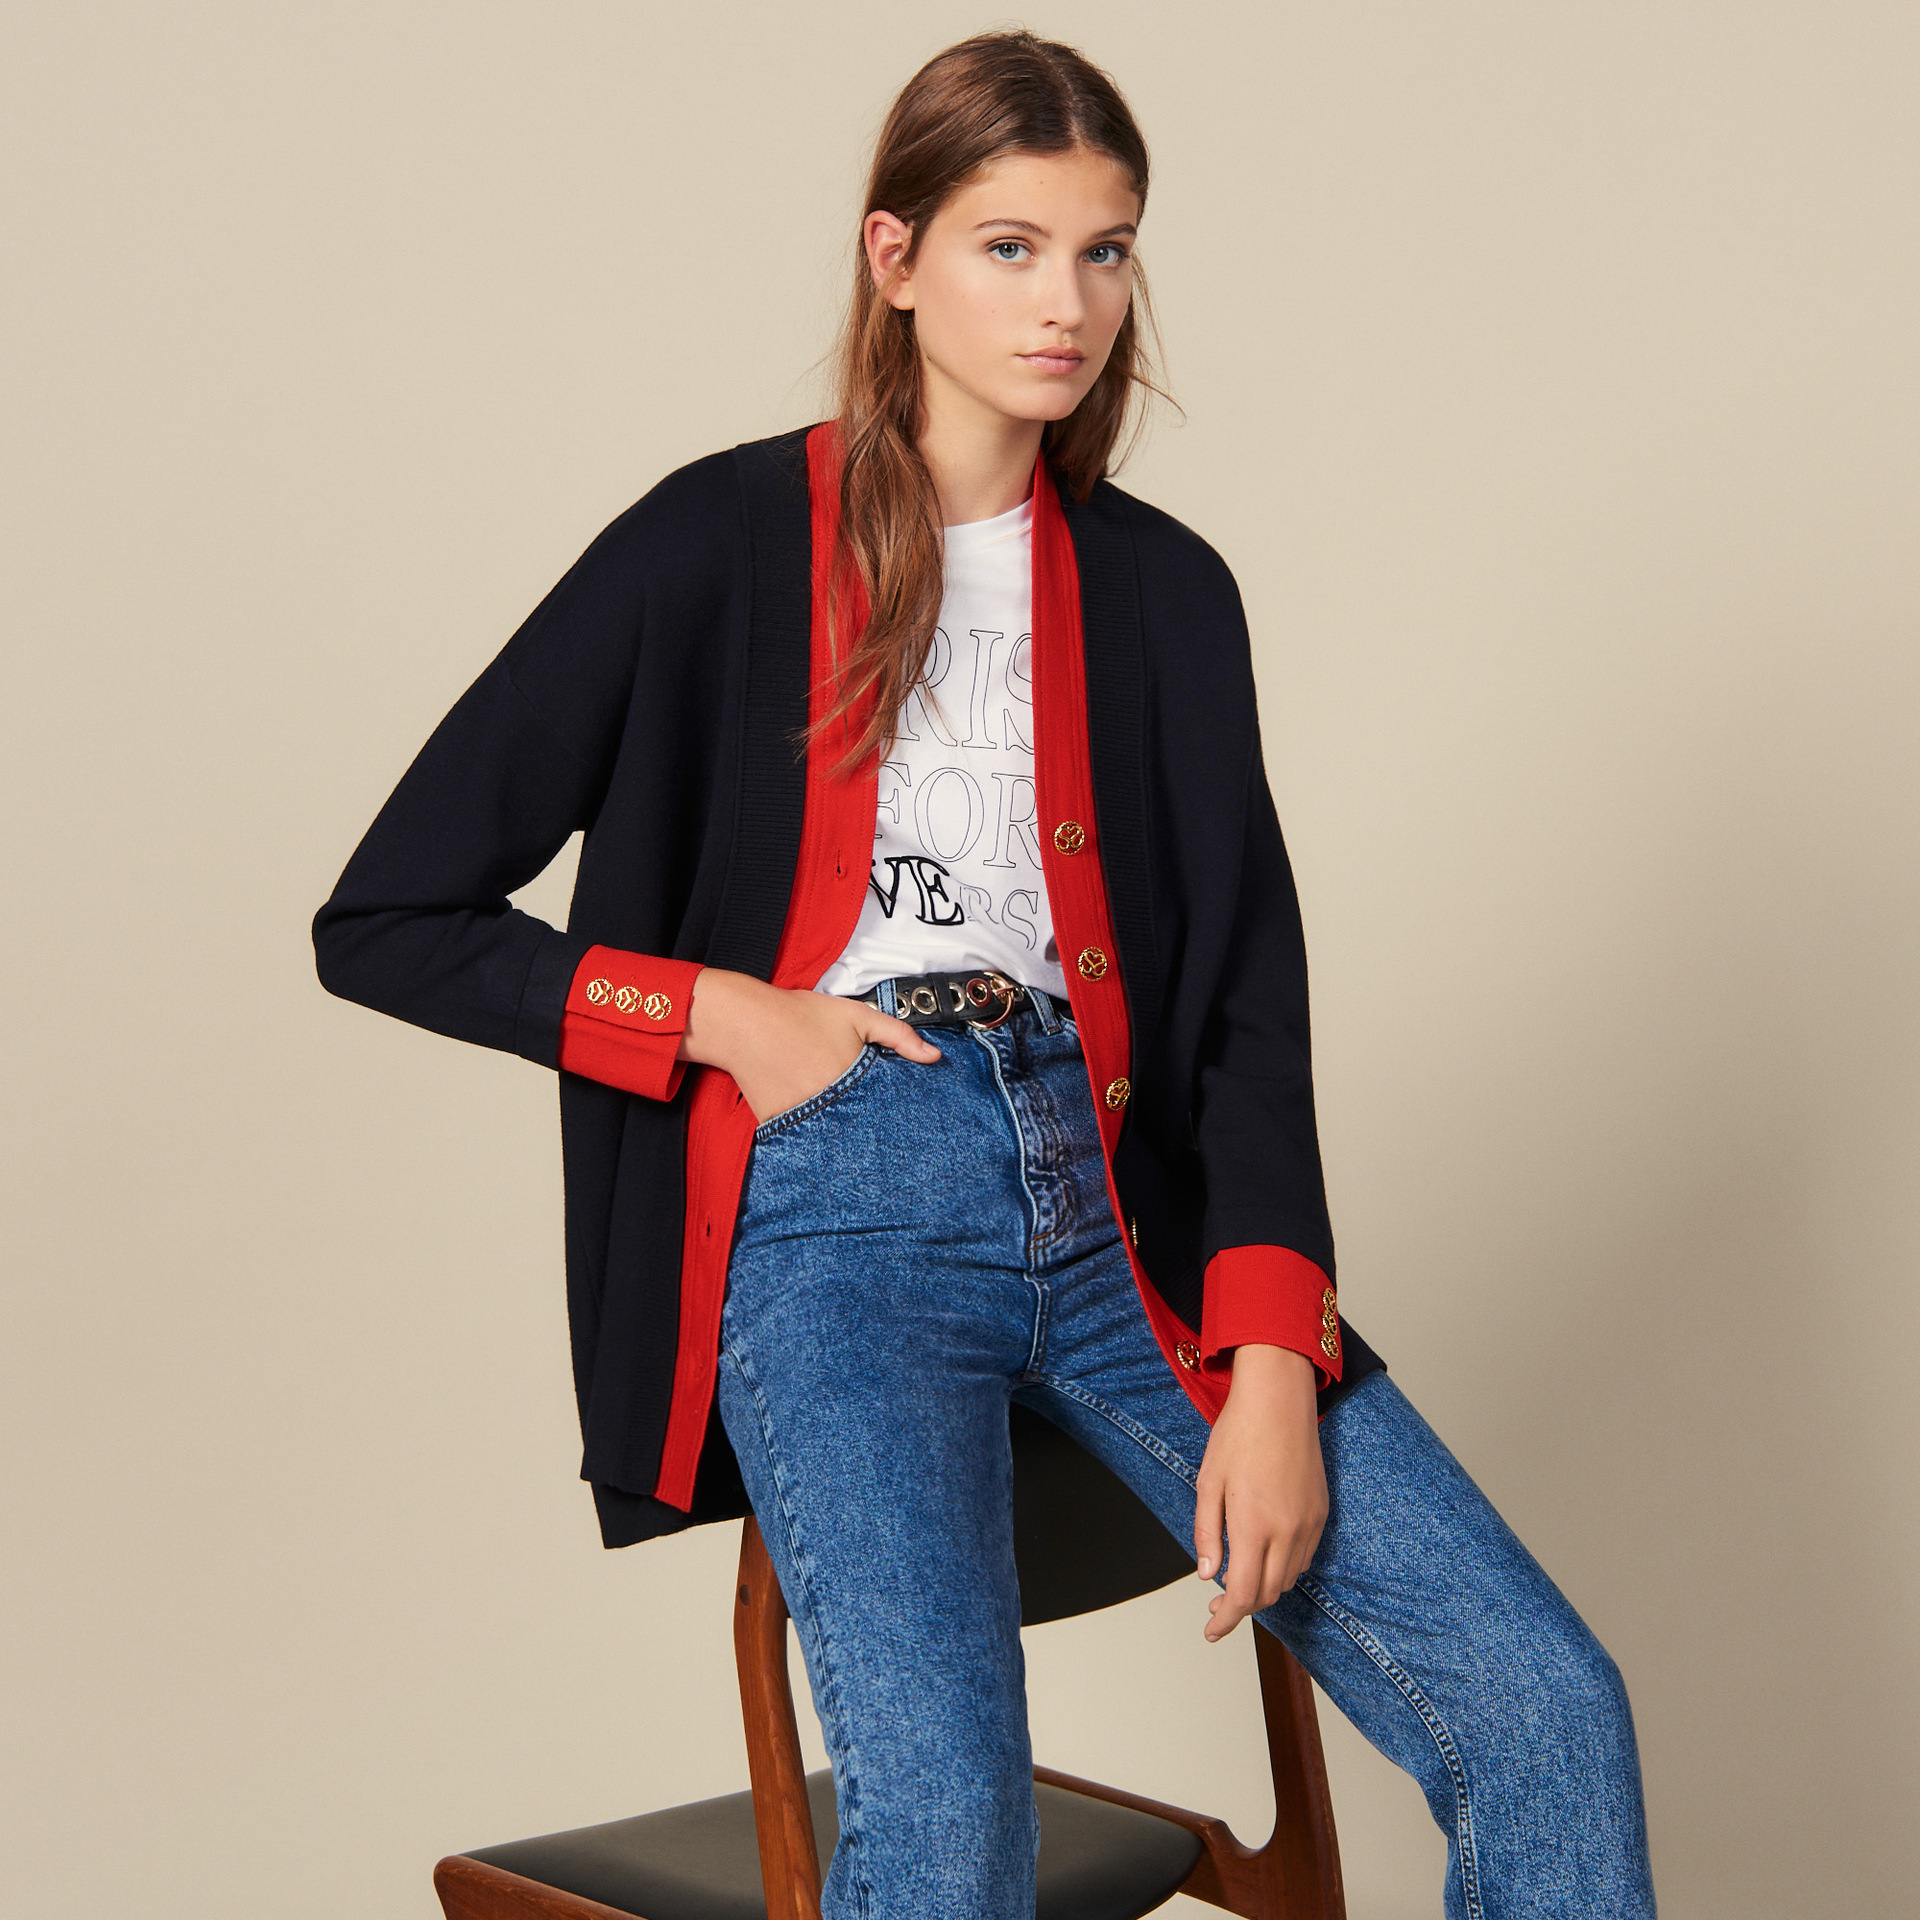 S family 19 autumn / winter new small fragrance color contrast piping metal breasted knitted cardigan coat 91059 loses money